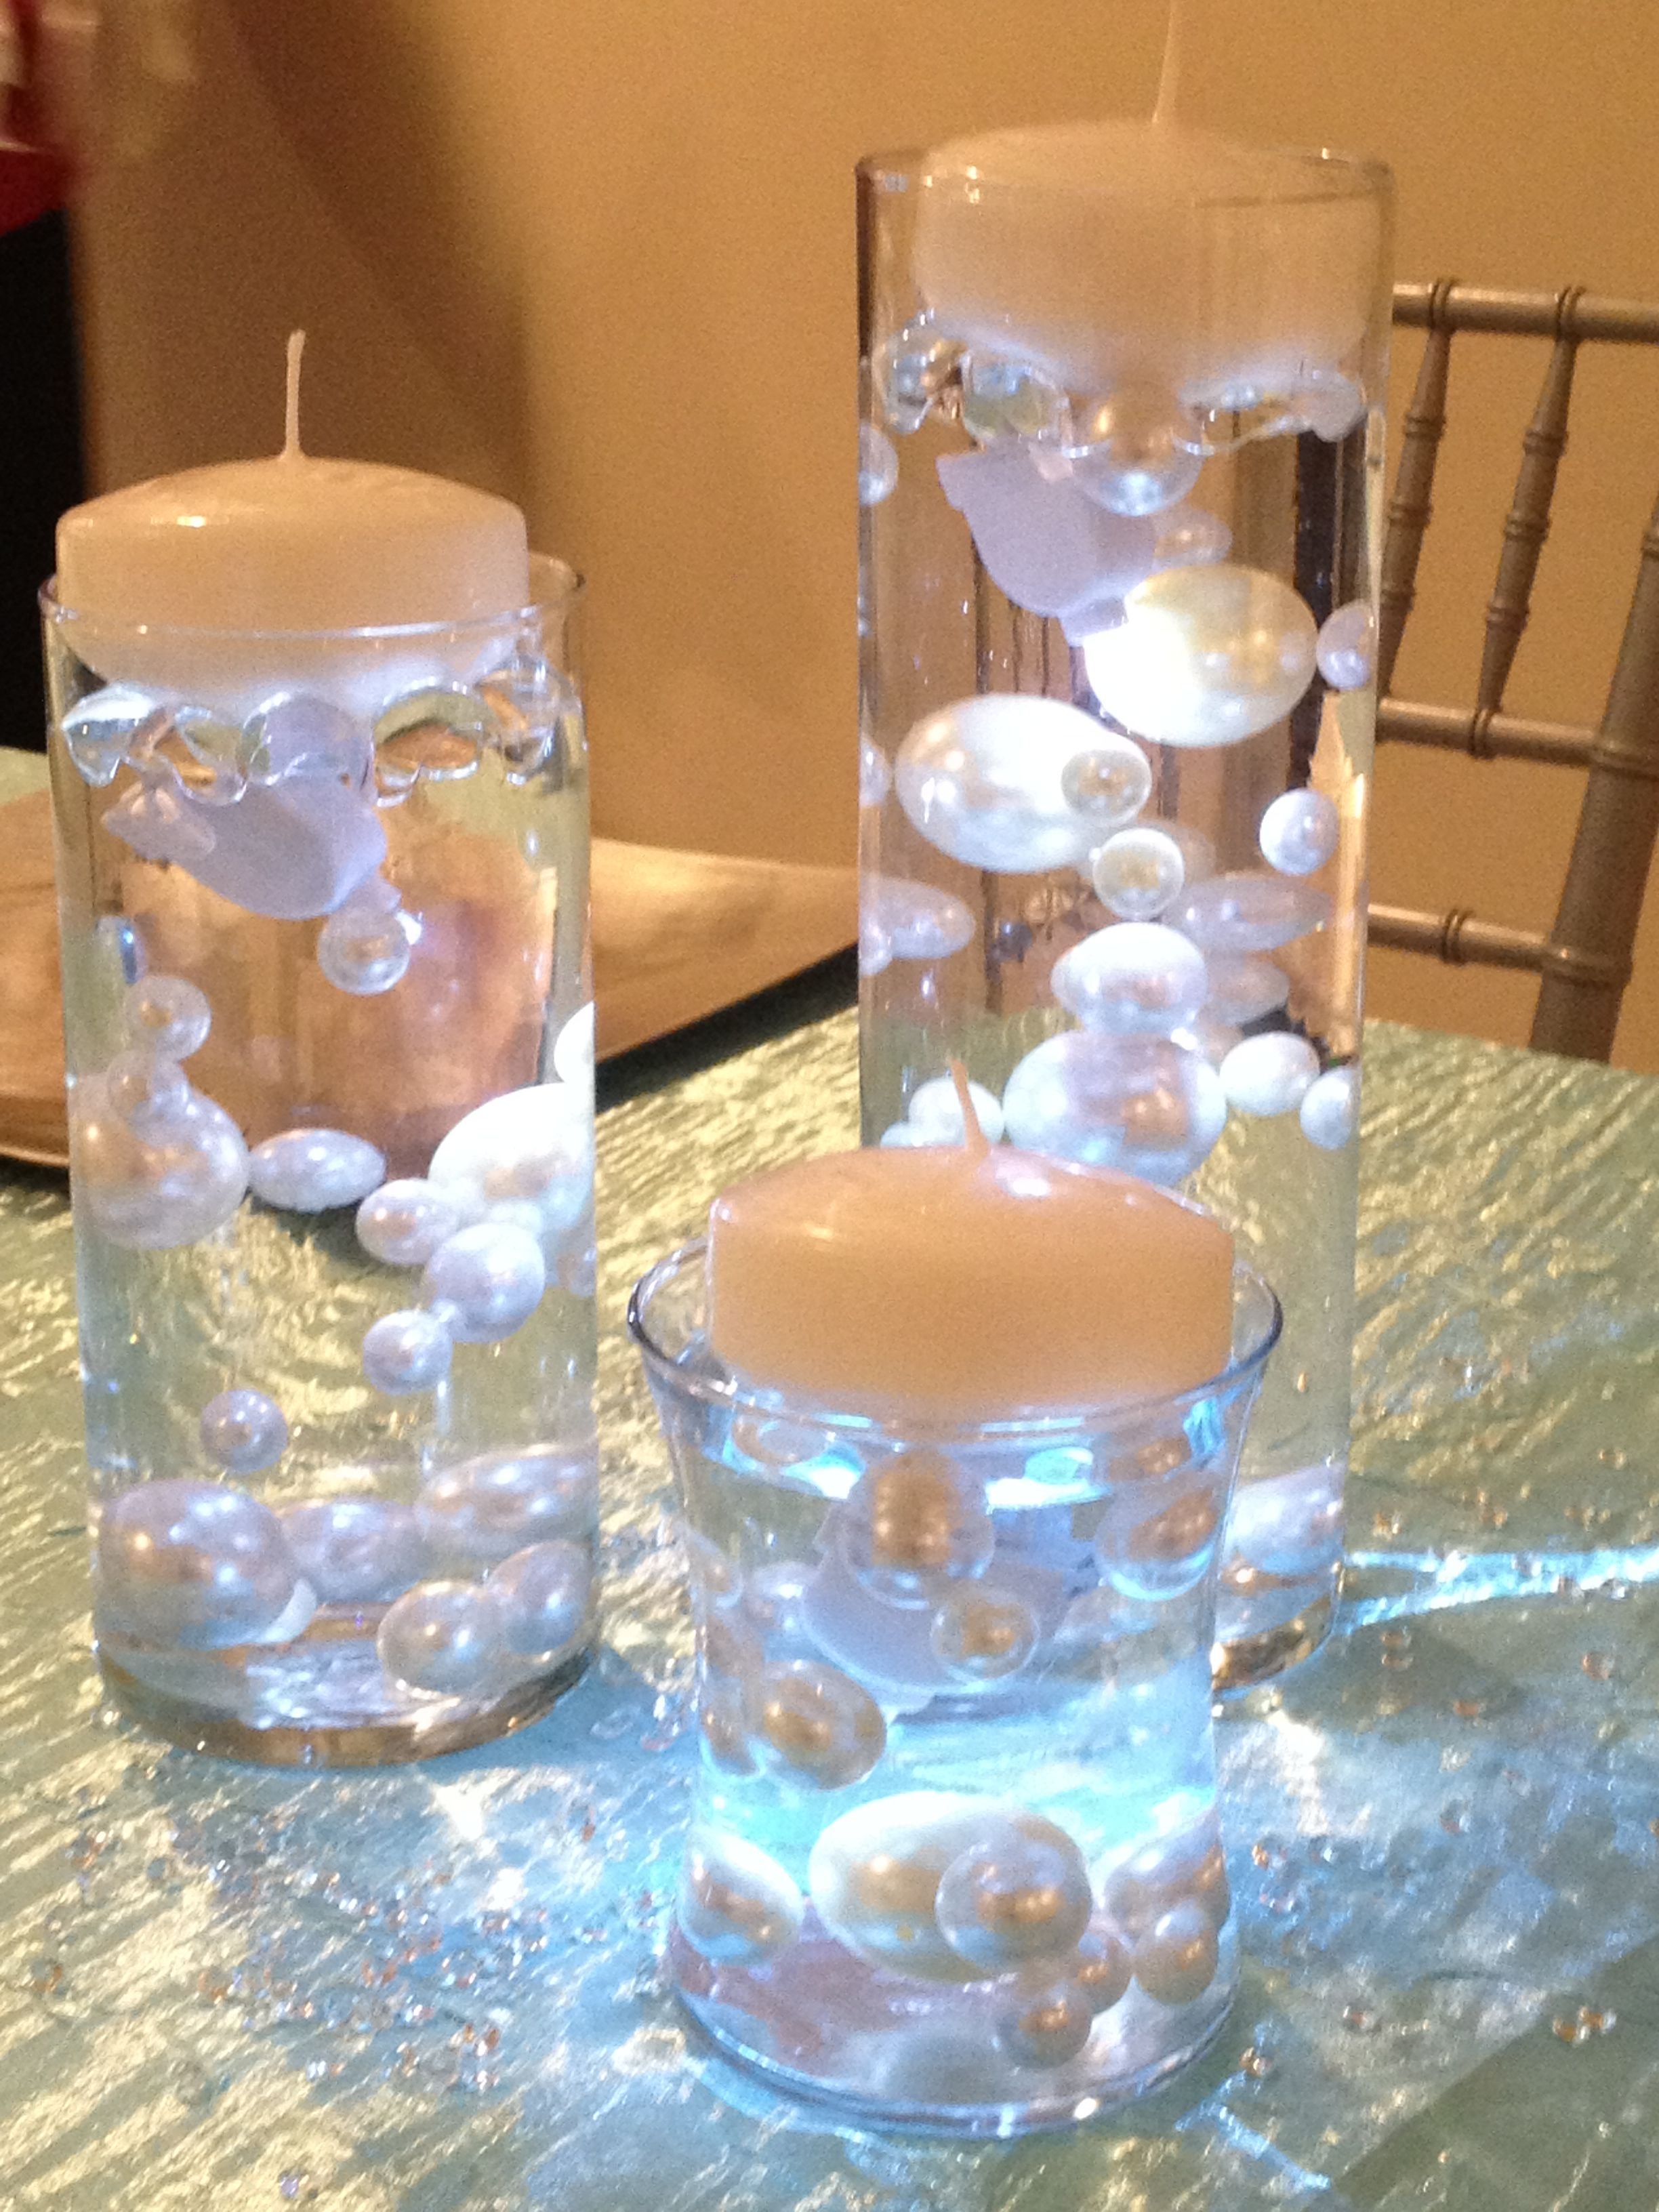 Tier cylinder vase with pearls and floating candles